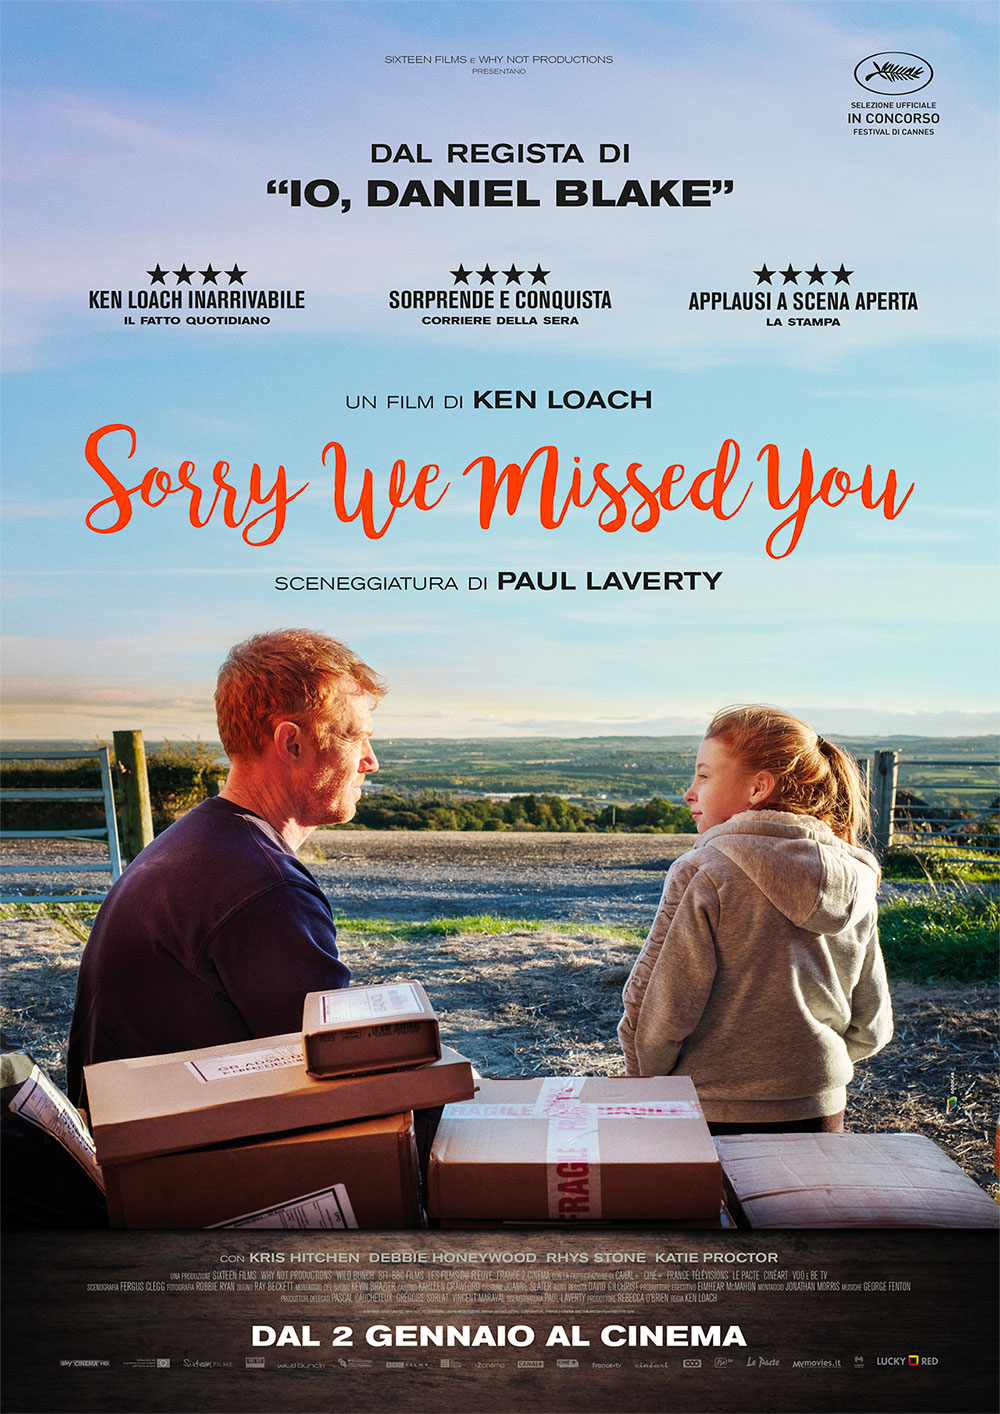 Sorry we missed you - Ken Loach